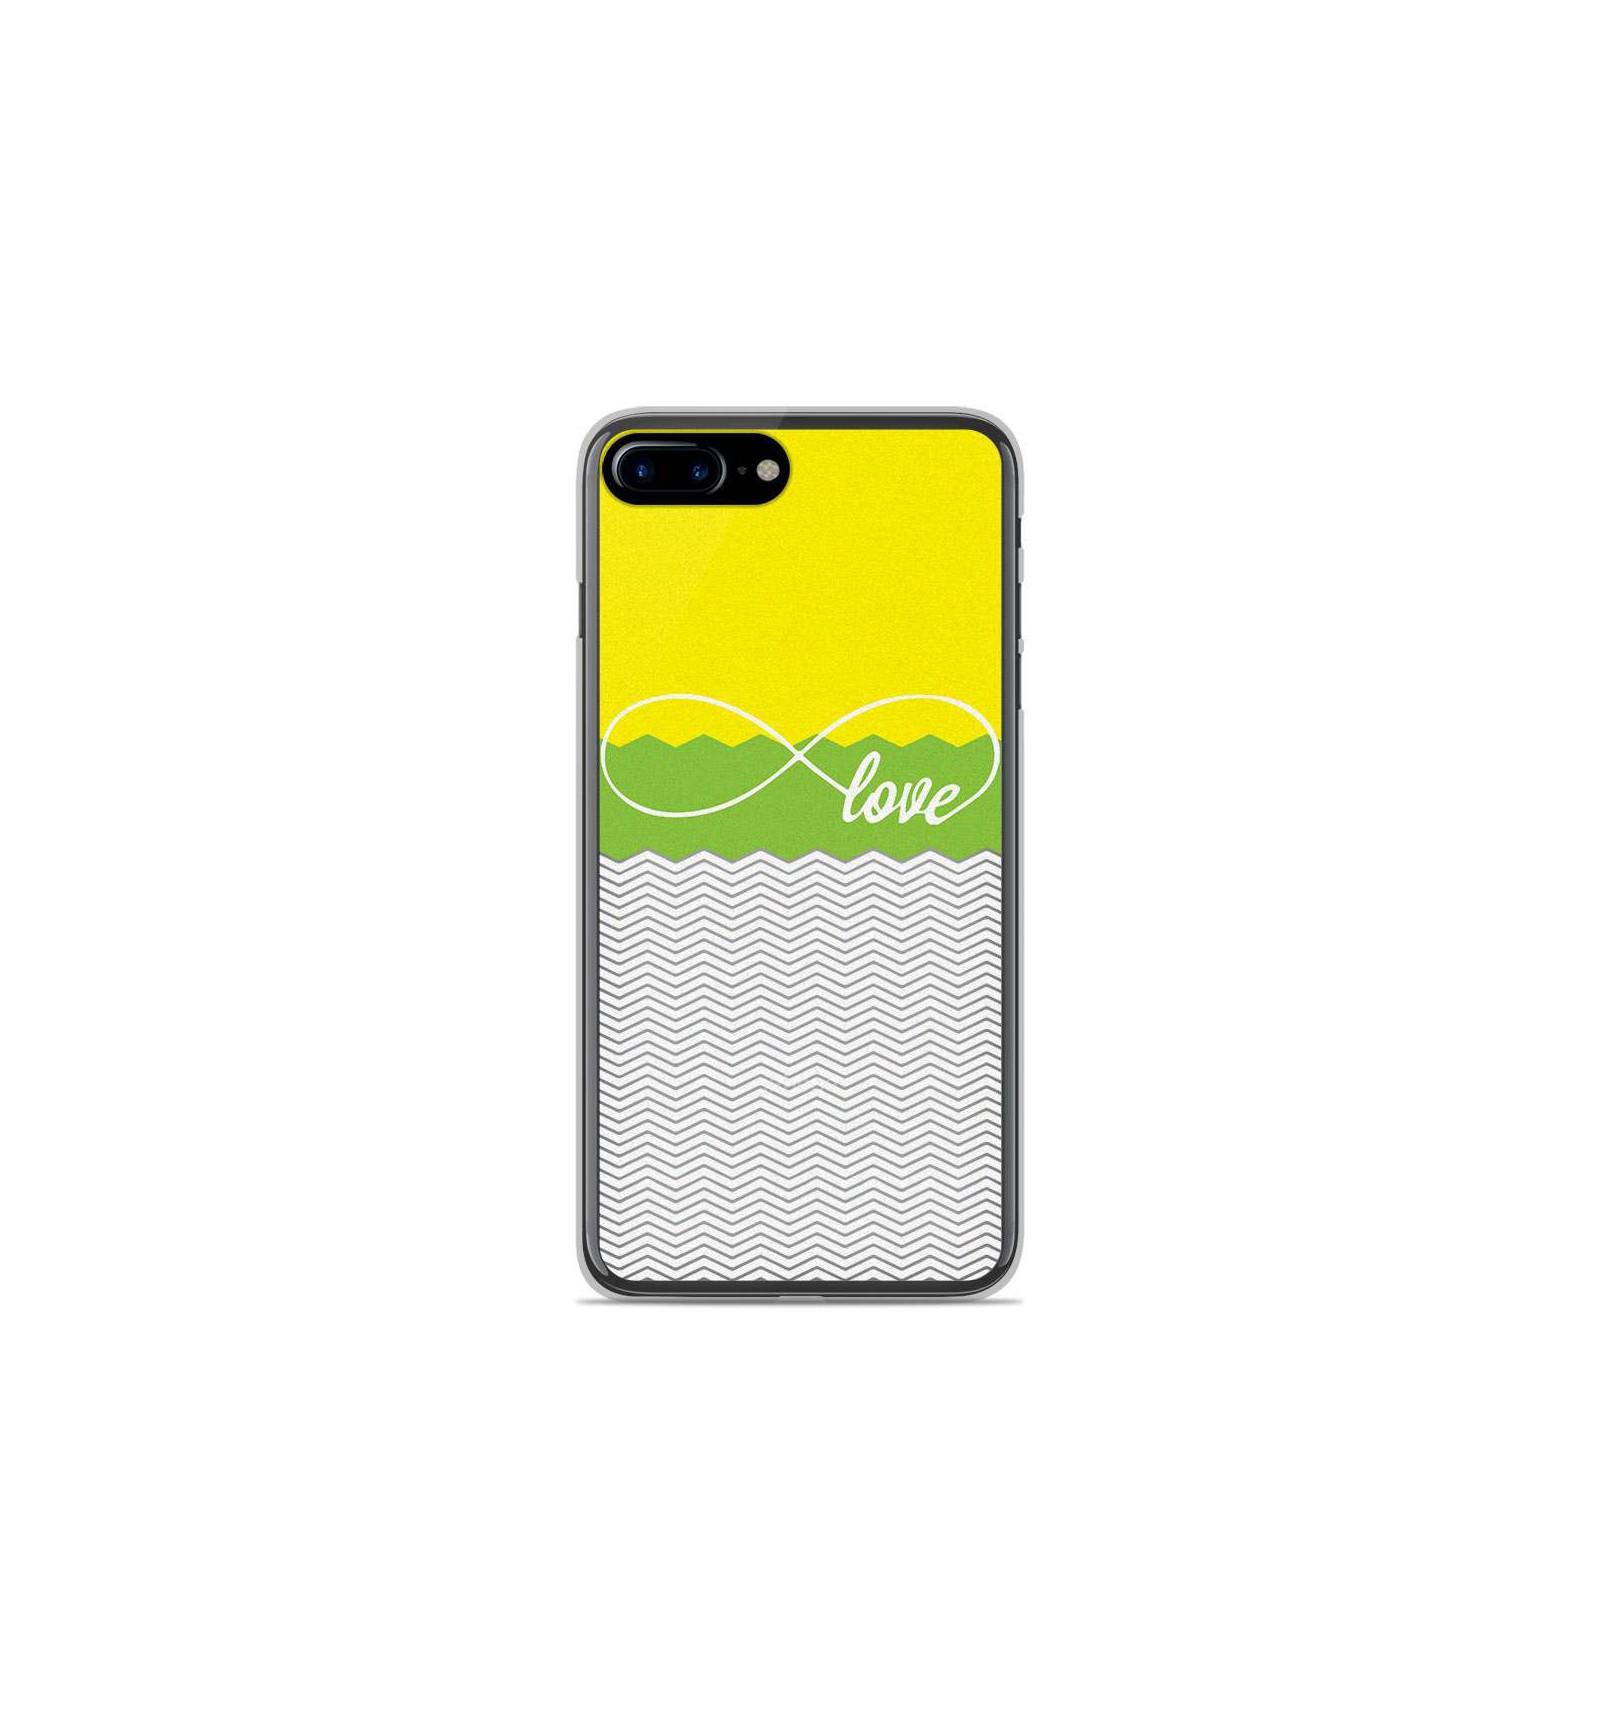 coque silicone iphone 8 plus jaune